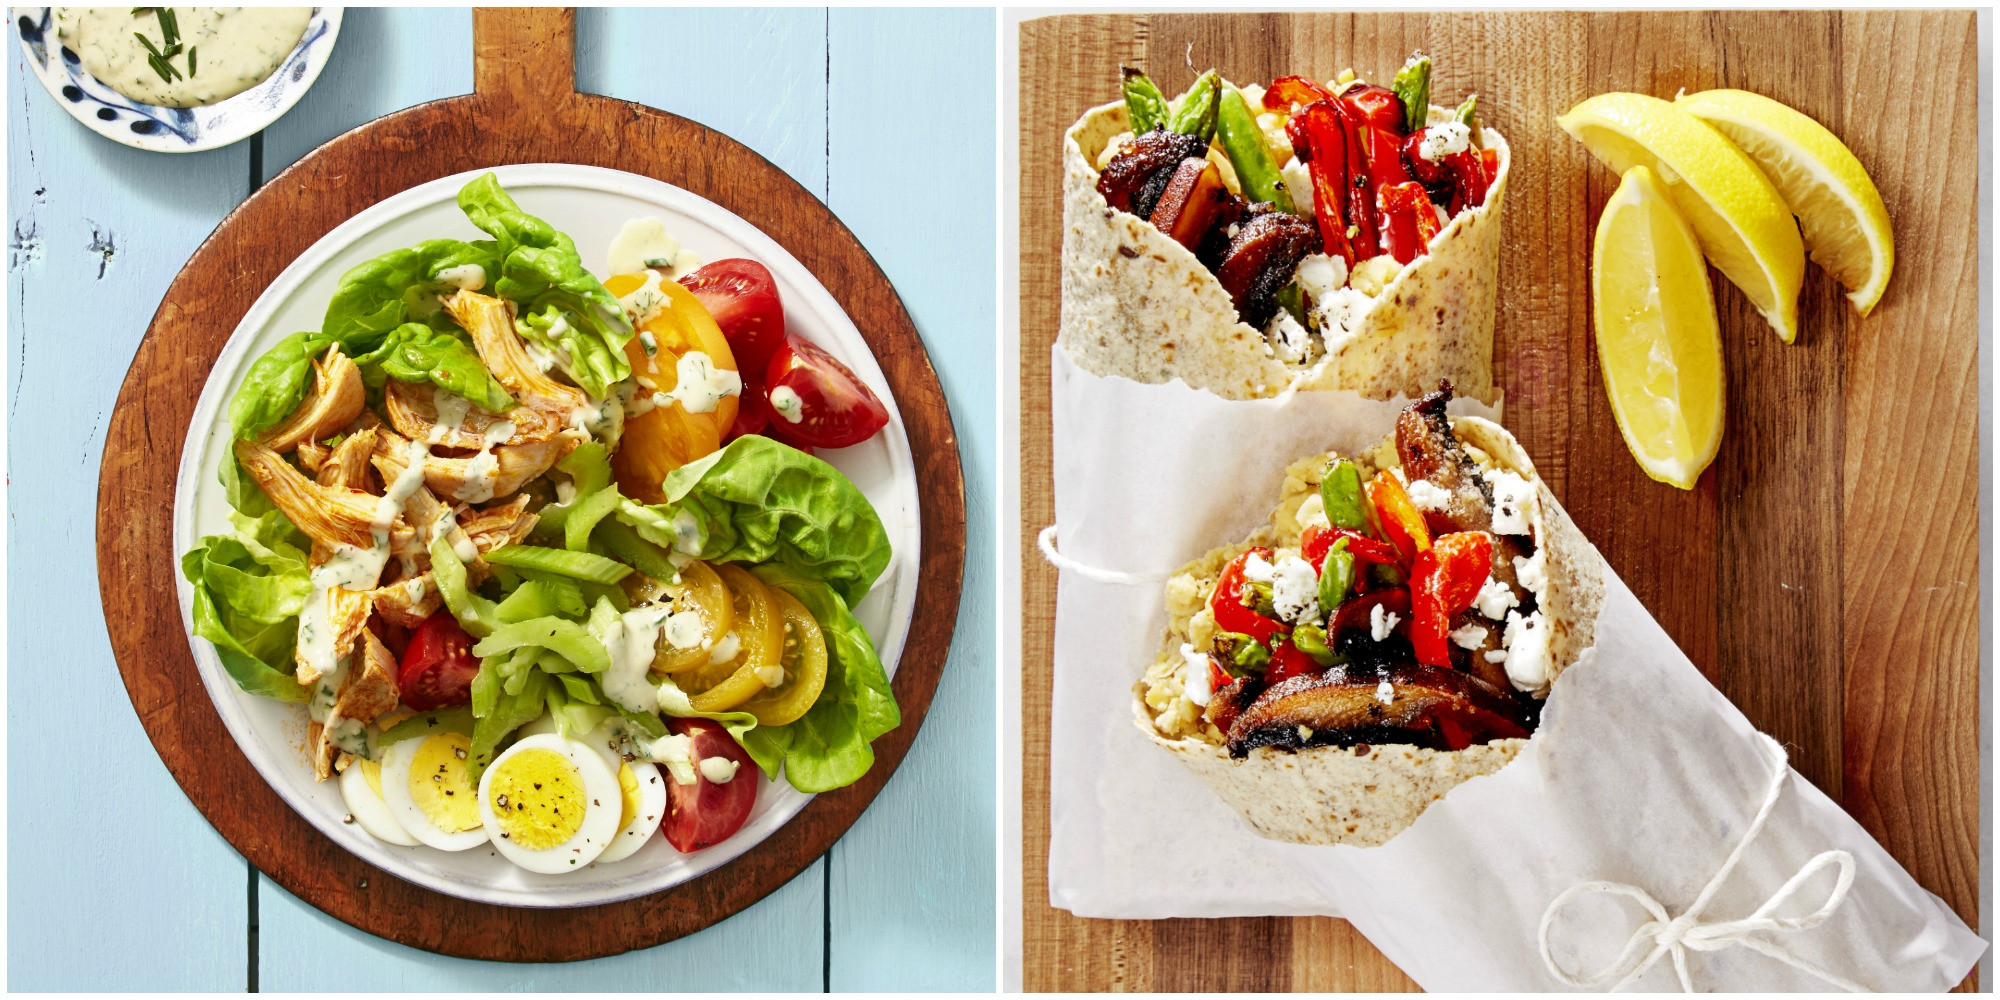 Healthy Lunch And Dinner Ideas  47 Healthy Lunch Ideas Easy Recipes for Quick Healthy